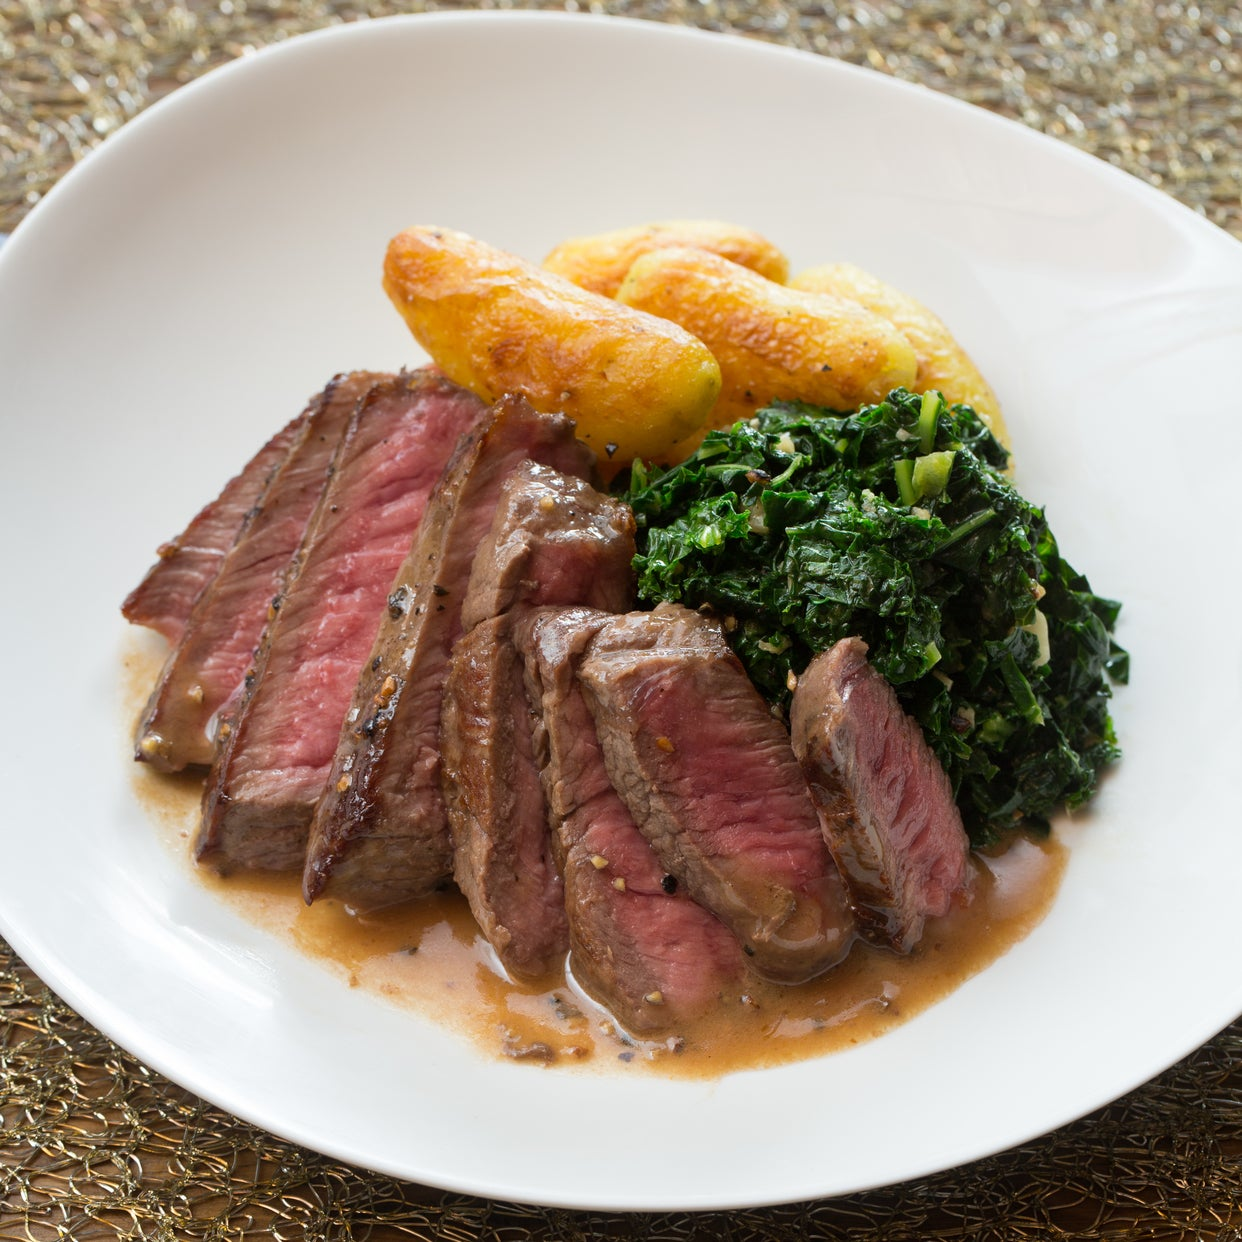 Steaks au Poivre with Crispy Fingerling Potatoes & Sautéed Kale